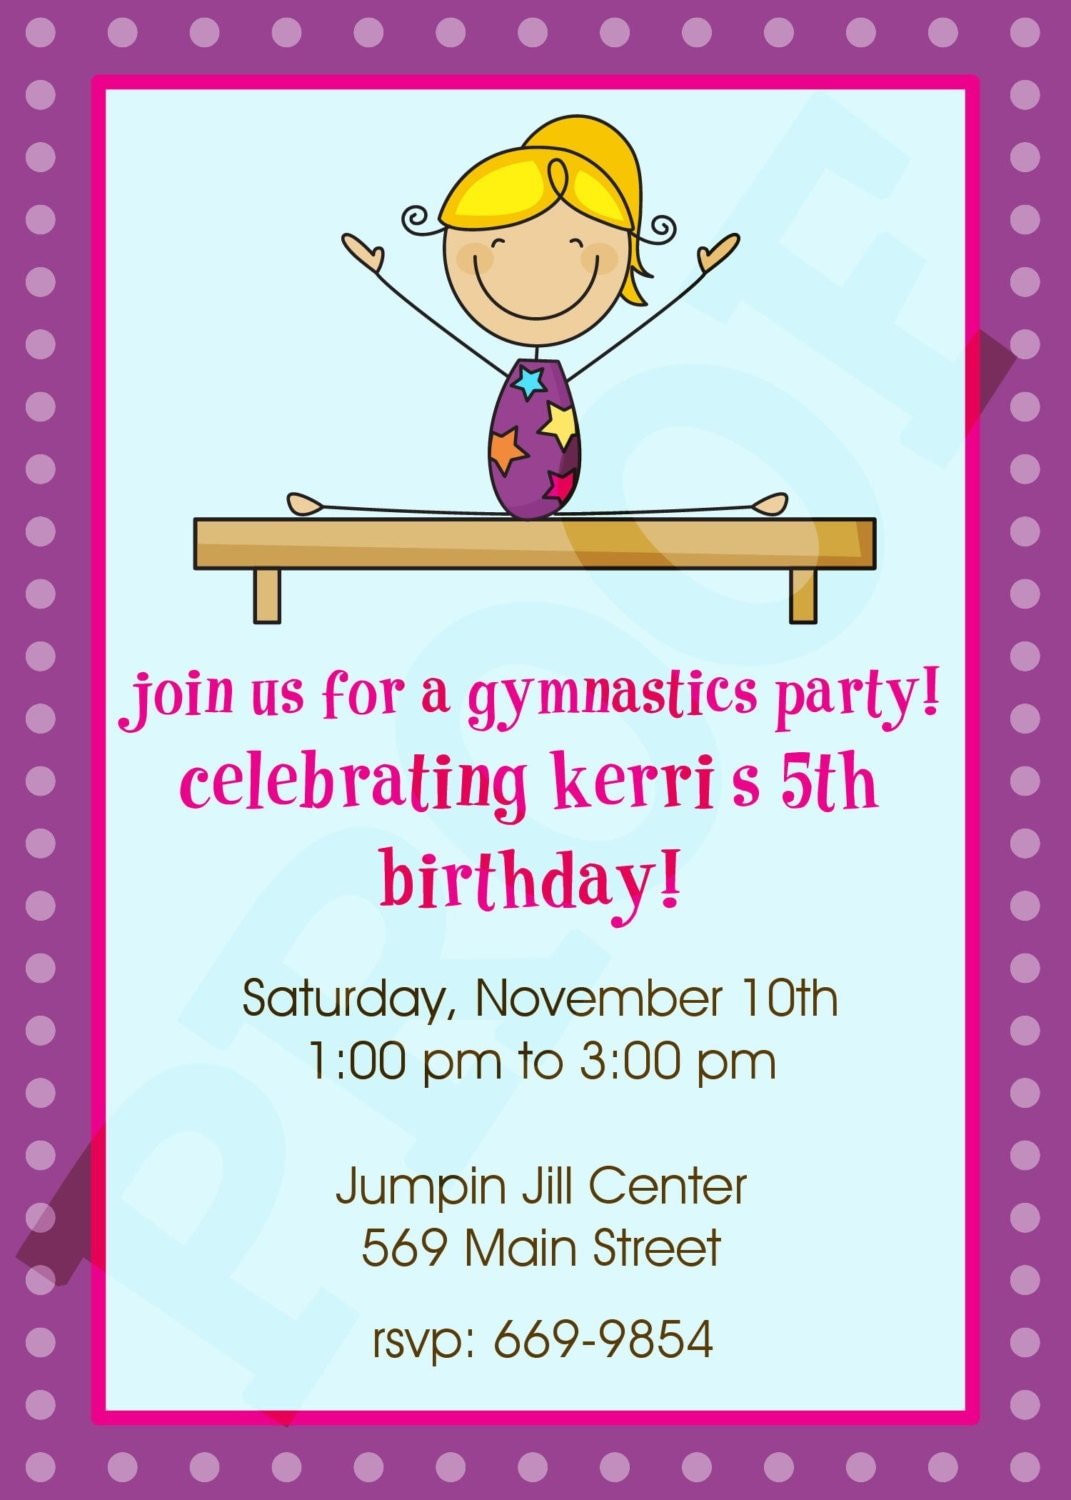 Gymnastics Party Gymnastics Invitation Gymnastics Birthday – Gymnastic Birthday Invitations